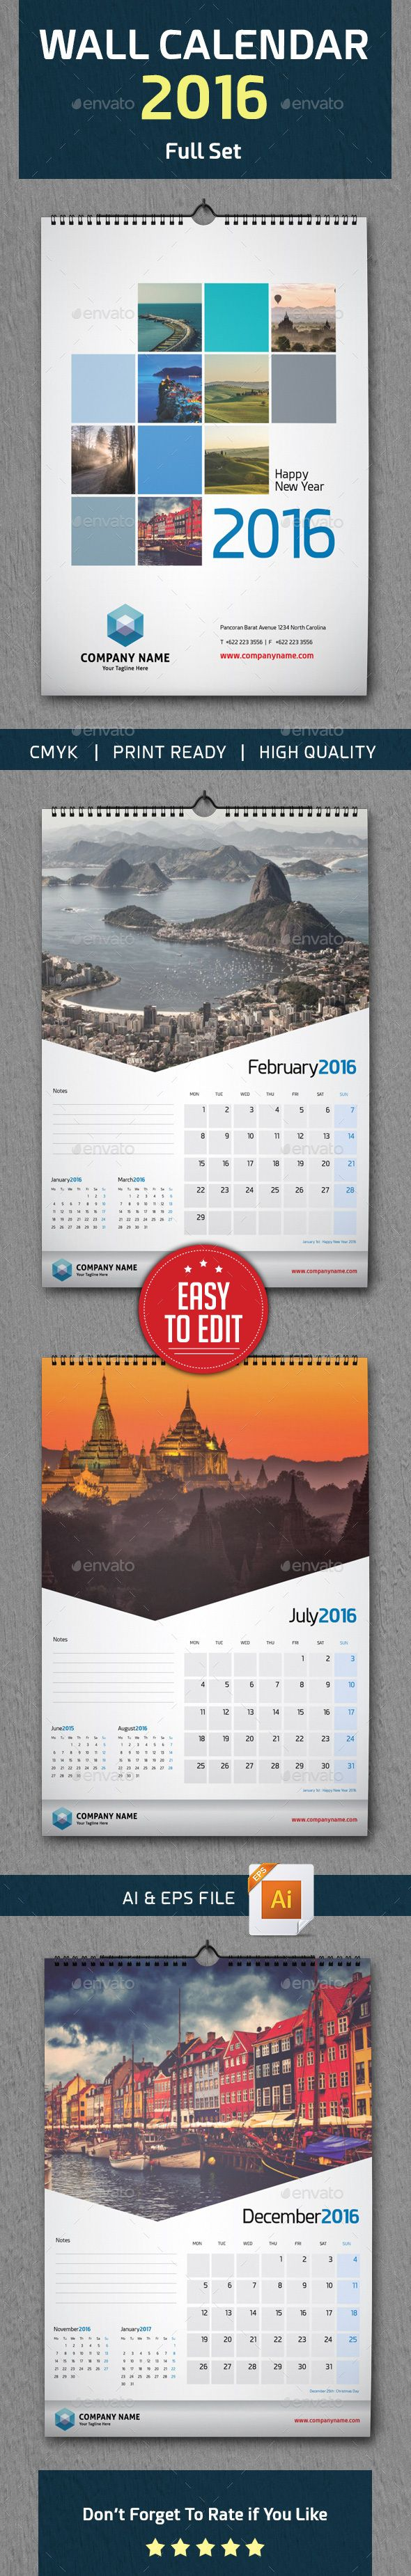 Corporate Calendar Design 2016 : Best corporate calendar design images on pinterest